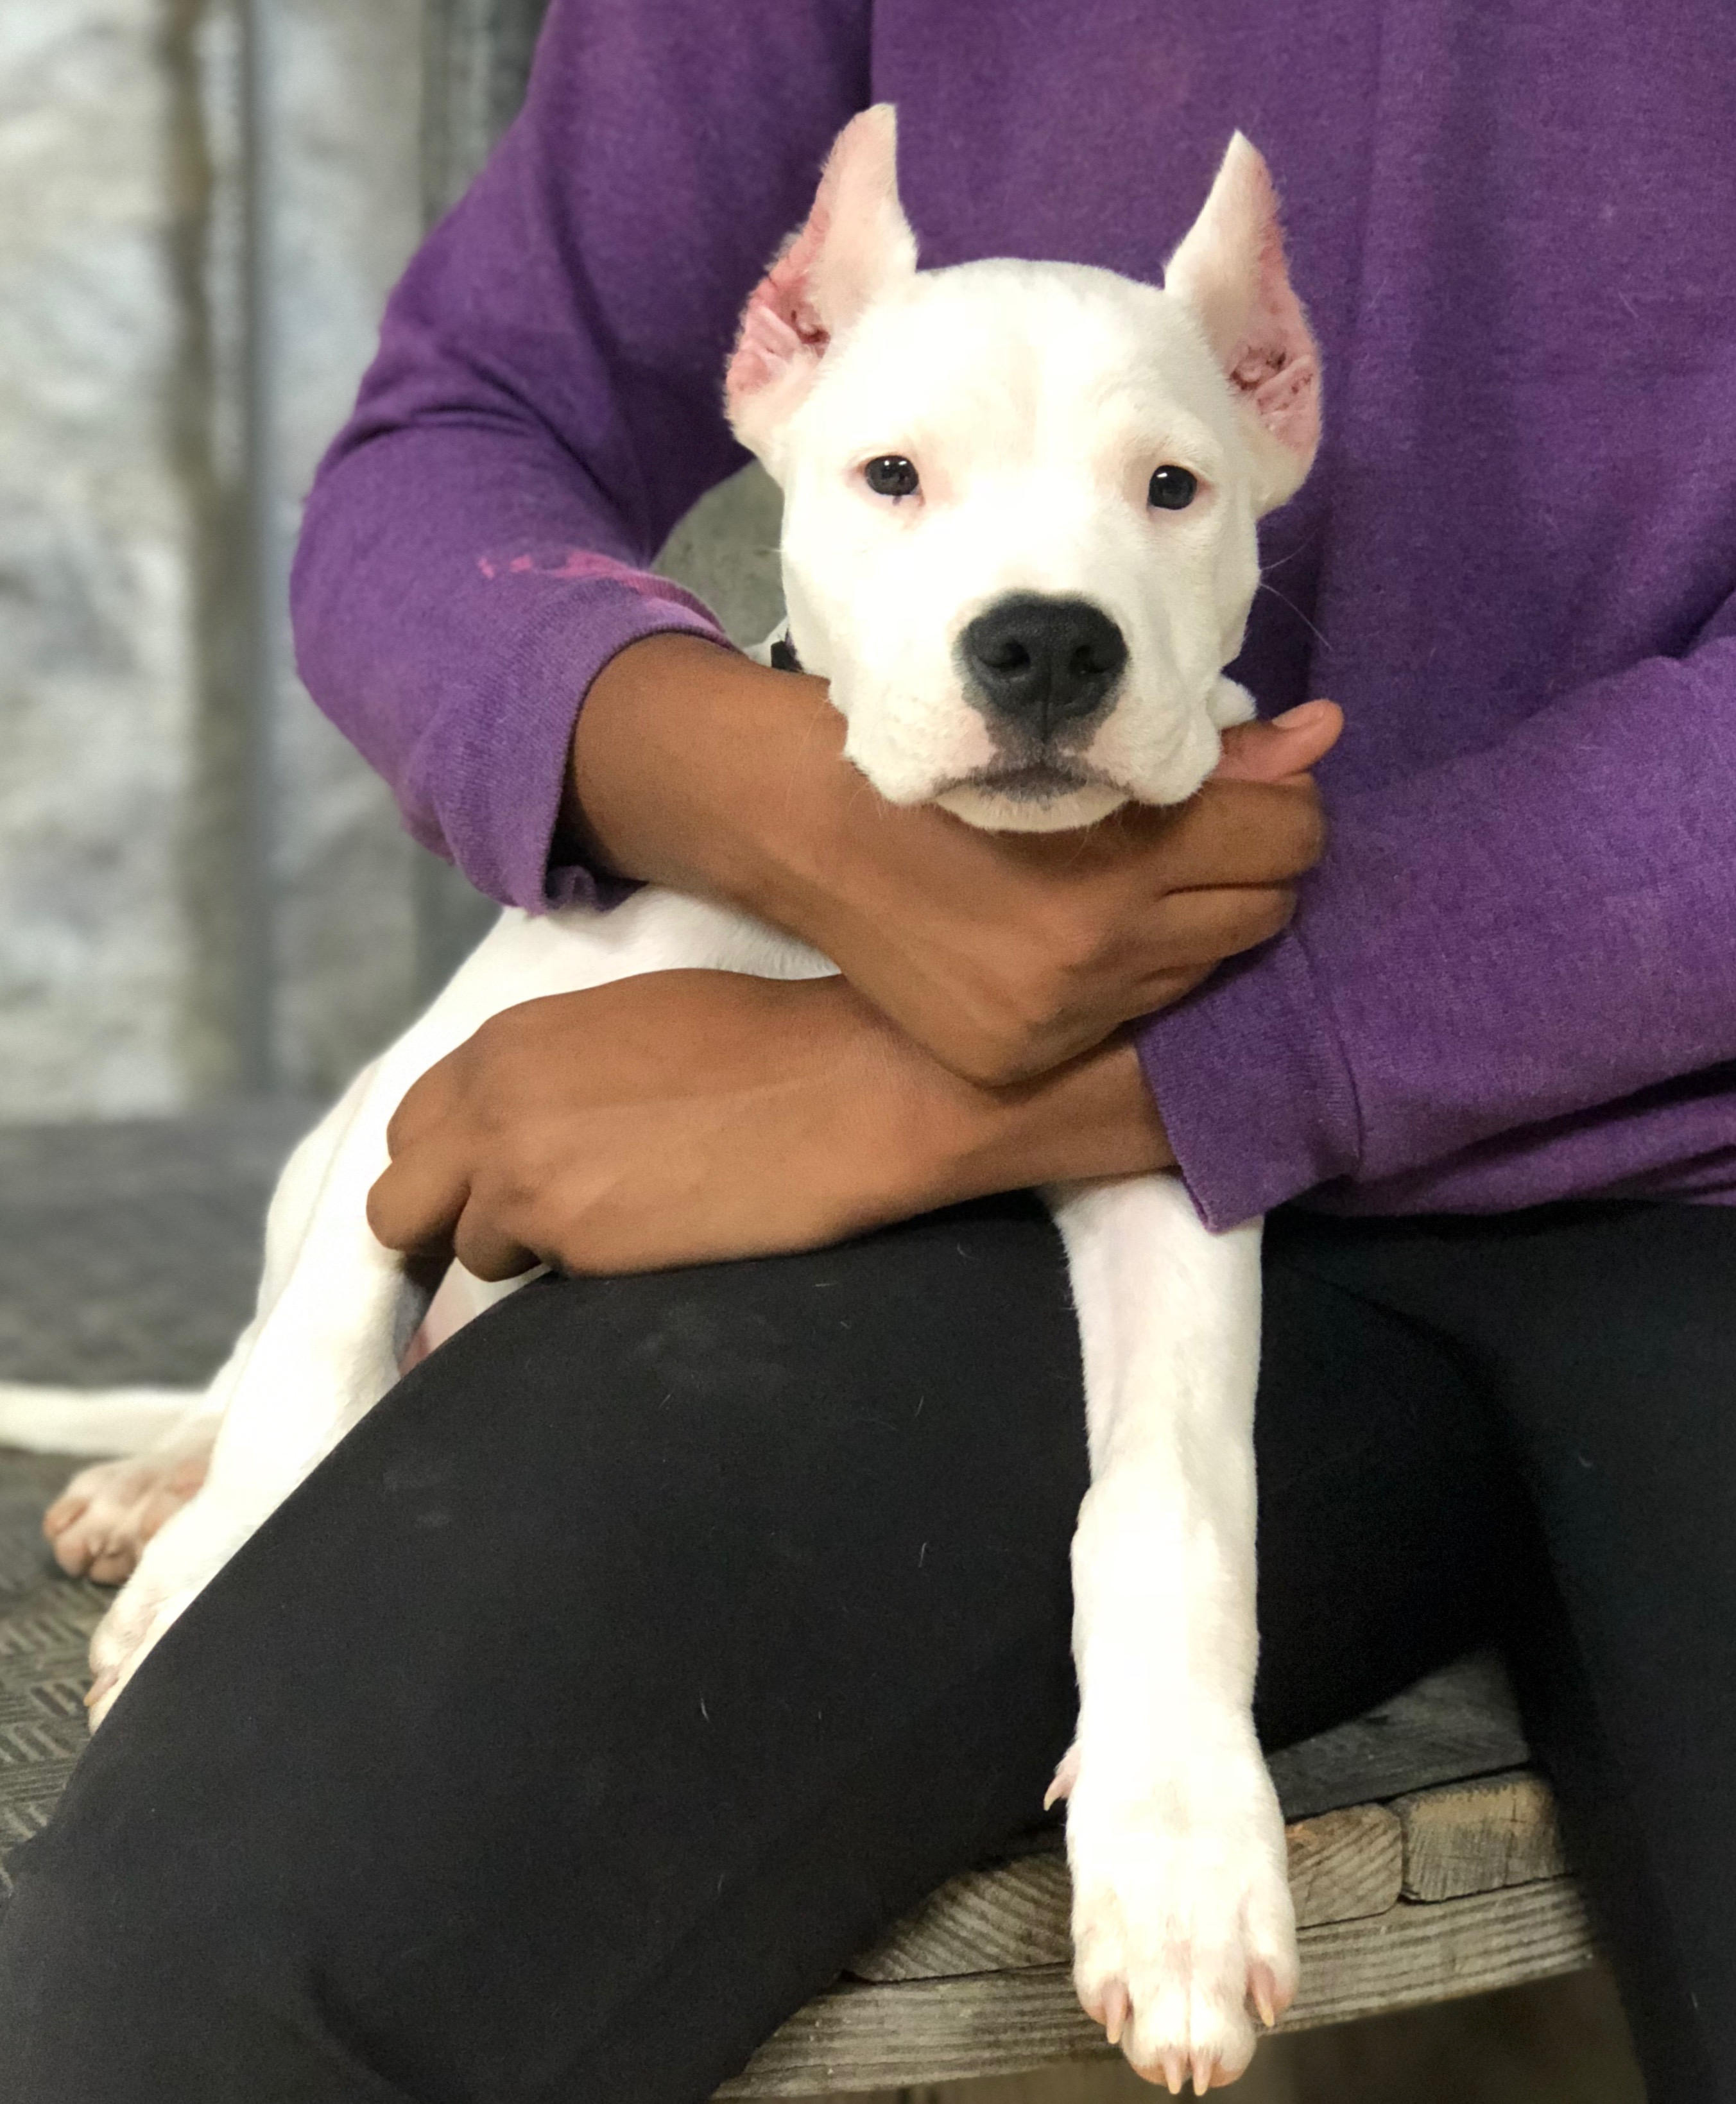 Dogo Argentino Puppies For Sale - World Class Dogo Argentino